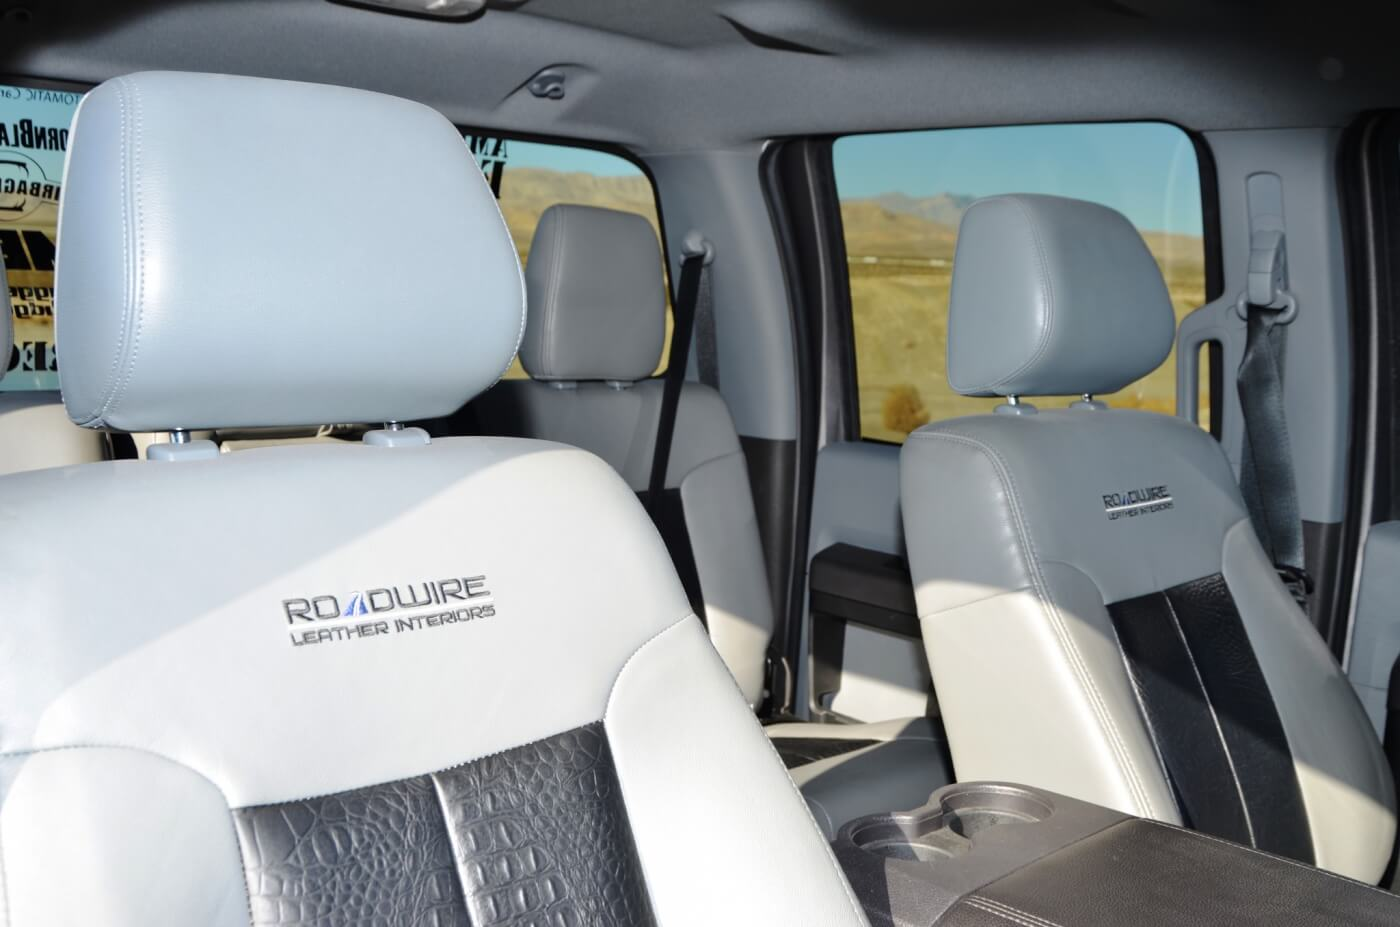 The interior features a mass of stereo upgrades from Pioneer and PowerBass as well as multiple monitors for passenger TV viewing. The seats were wrapped in custom two-tone leather for the utmost in road trip comfort.